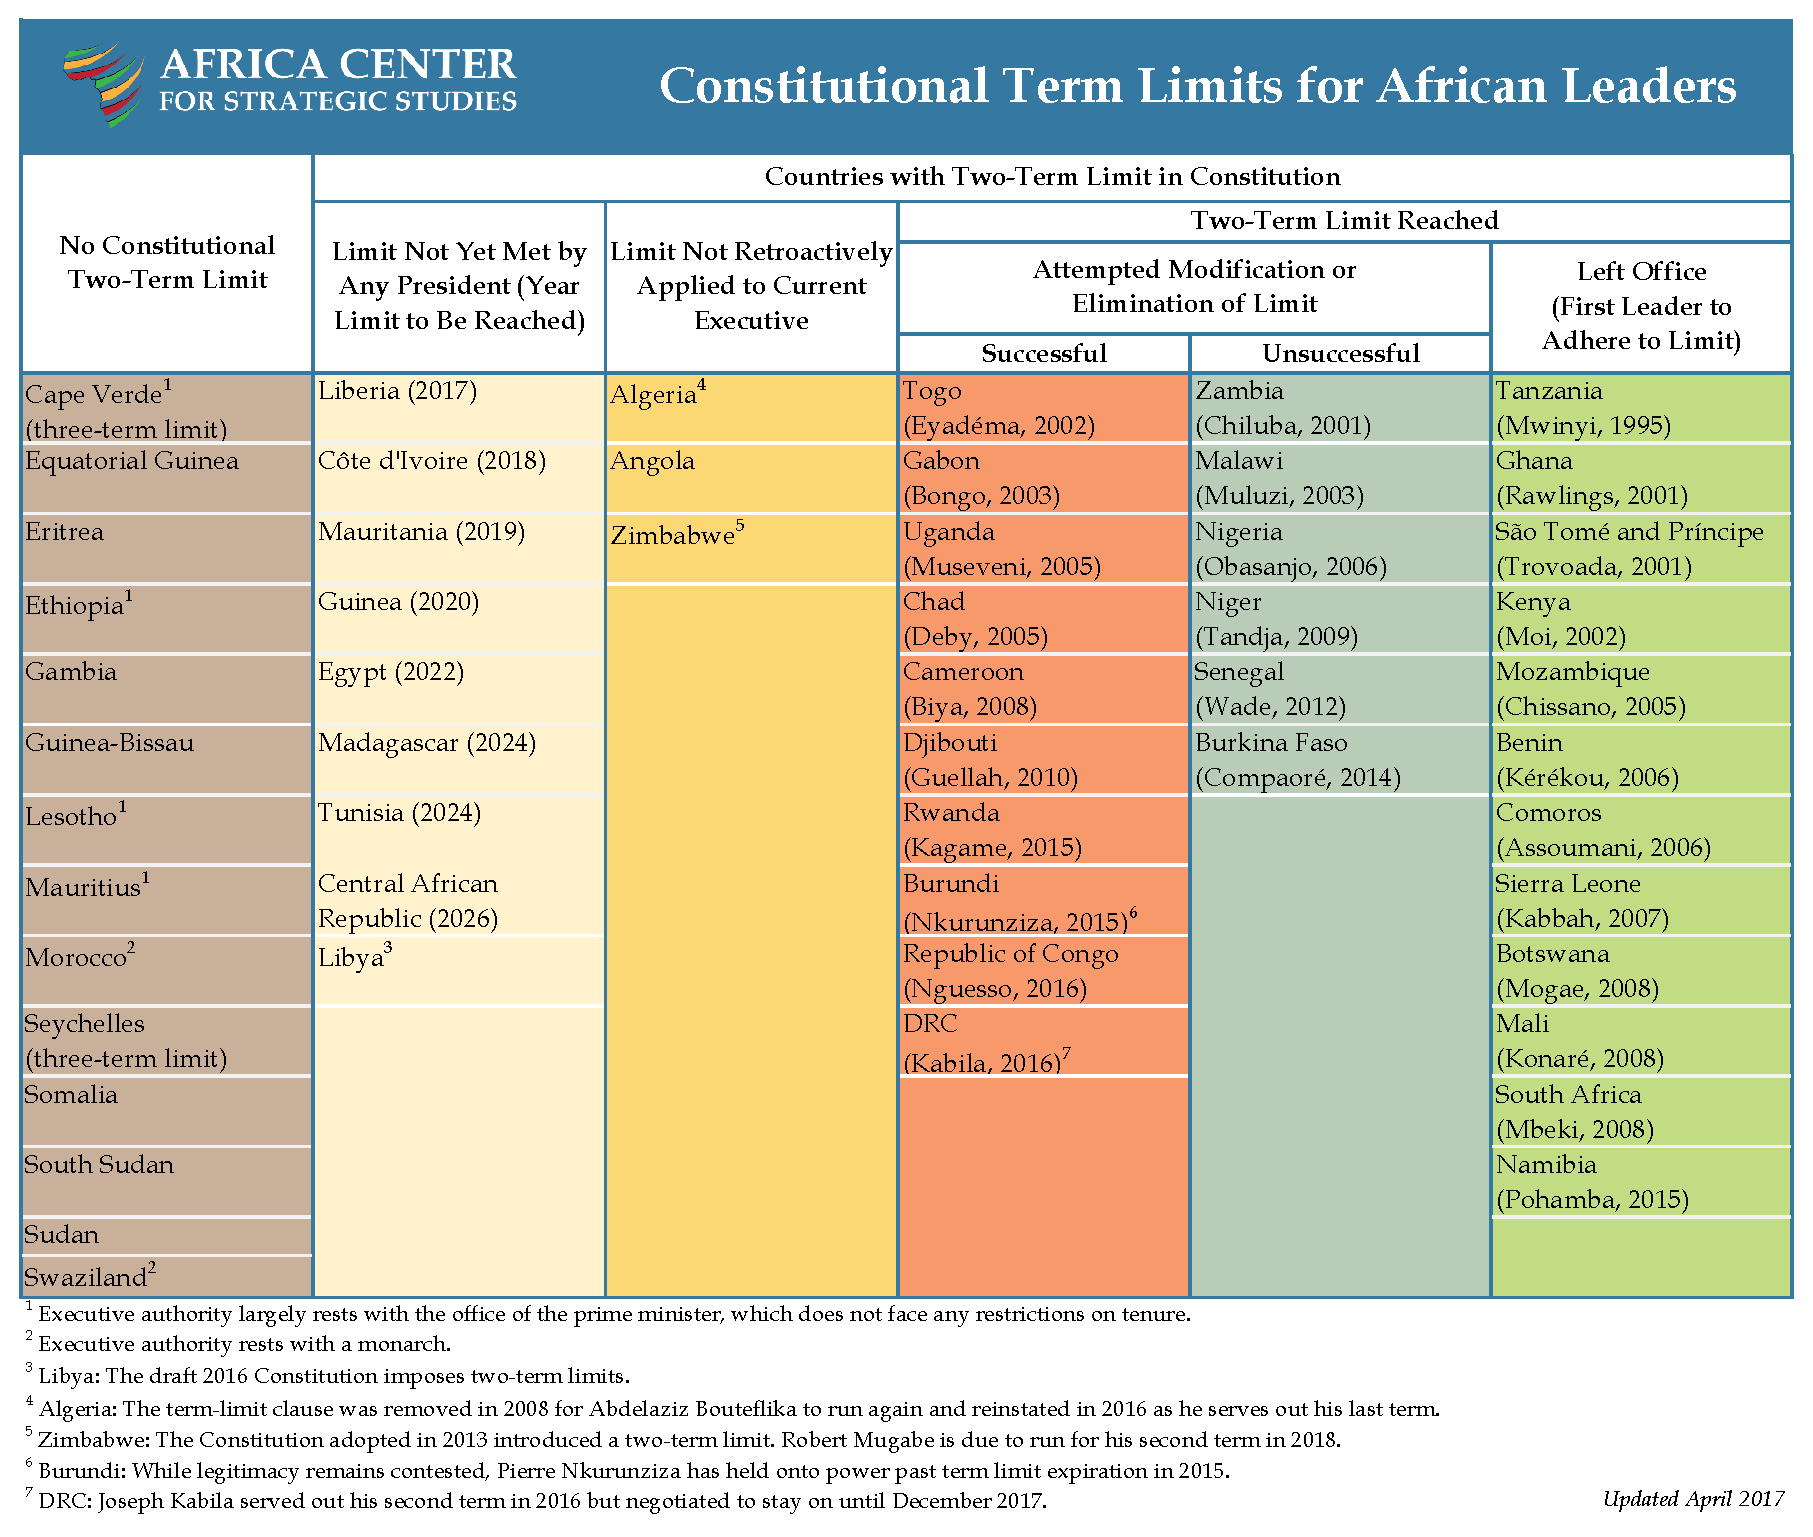 Constitutional Term Limits for African Leaders chart